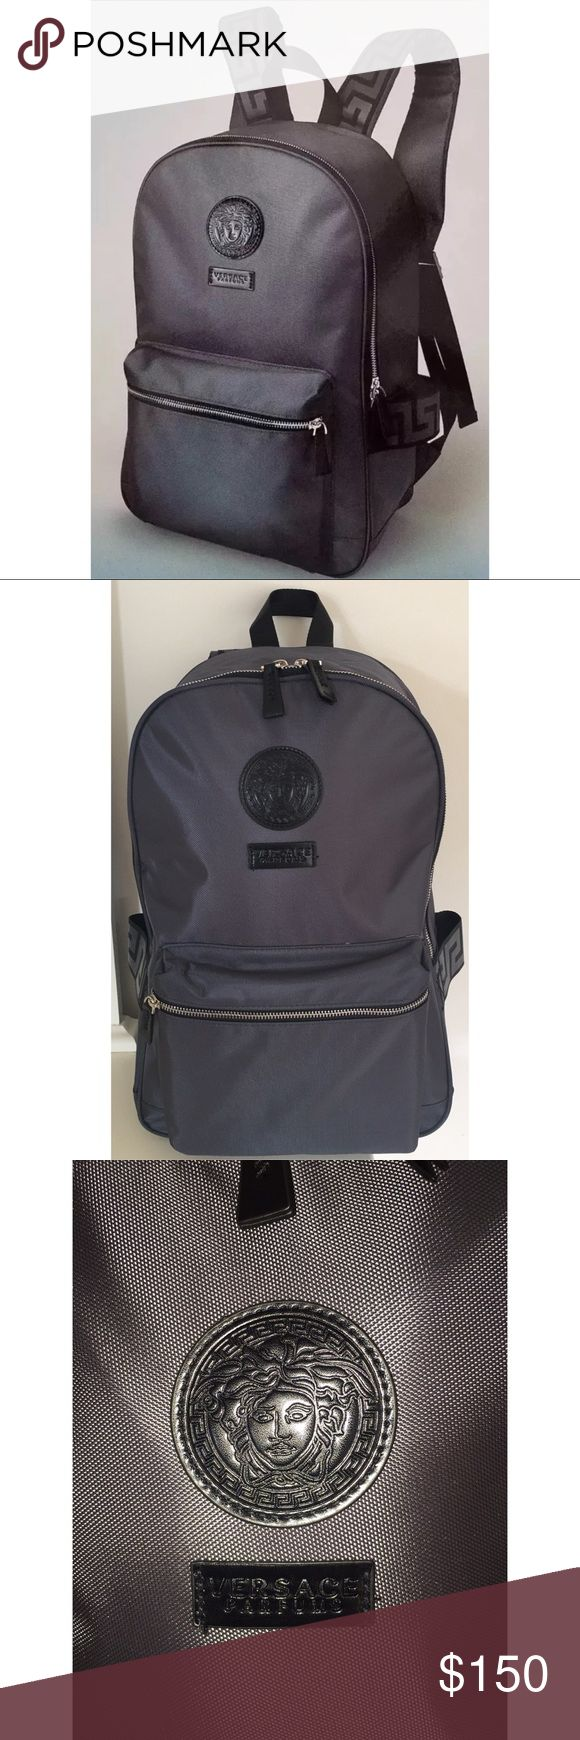 Versace Gray Medusa Logo Backpack 100% Authentic New Without Tags! 100% Authentic! This Backpack Is Gorgeous! Super Lightweight And Comfortable To Wear! Multiple Zip Compartments! Versace Bags Backpacks